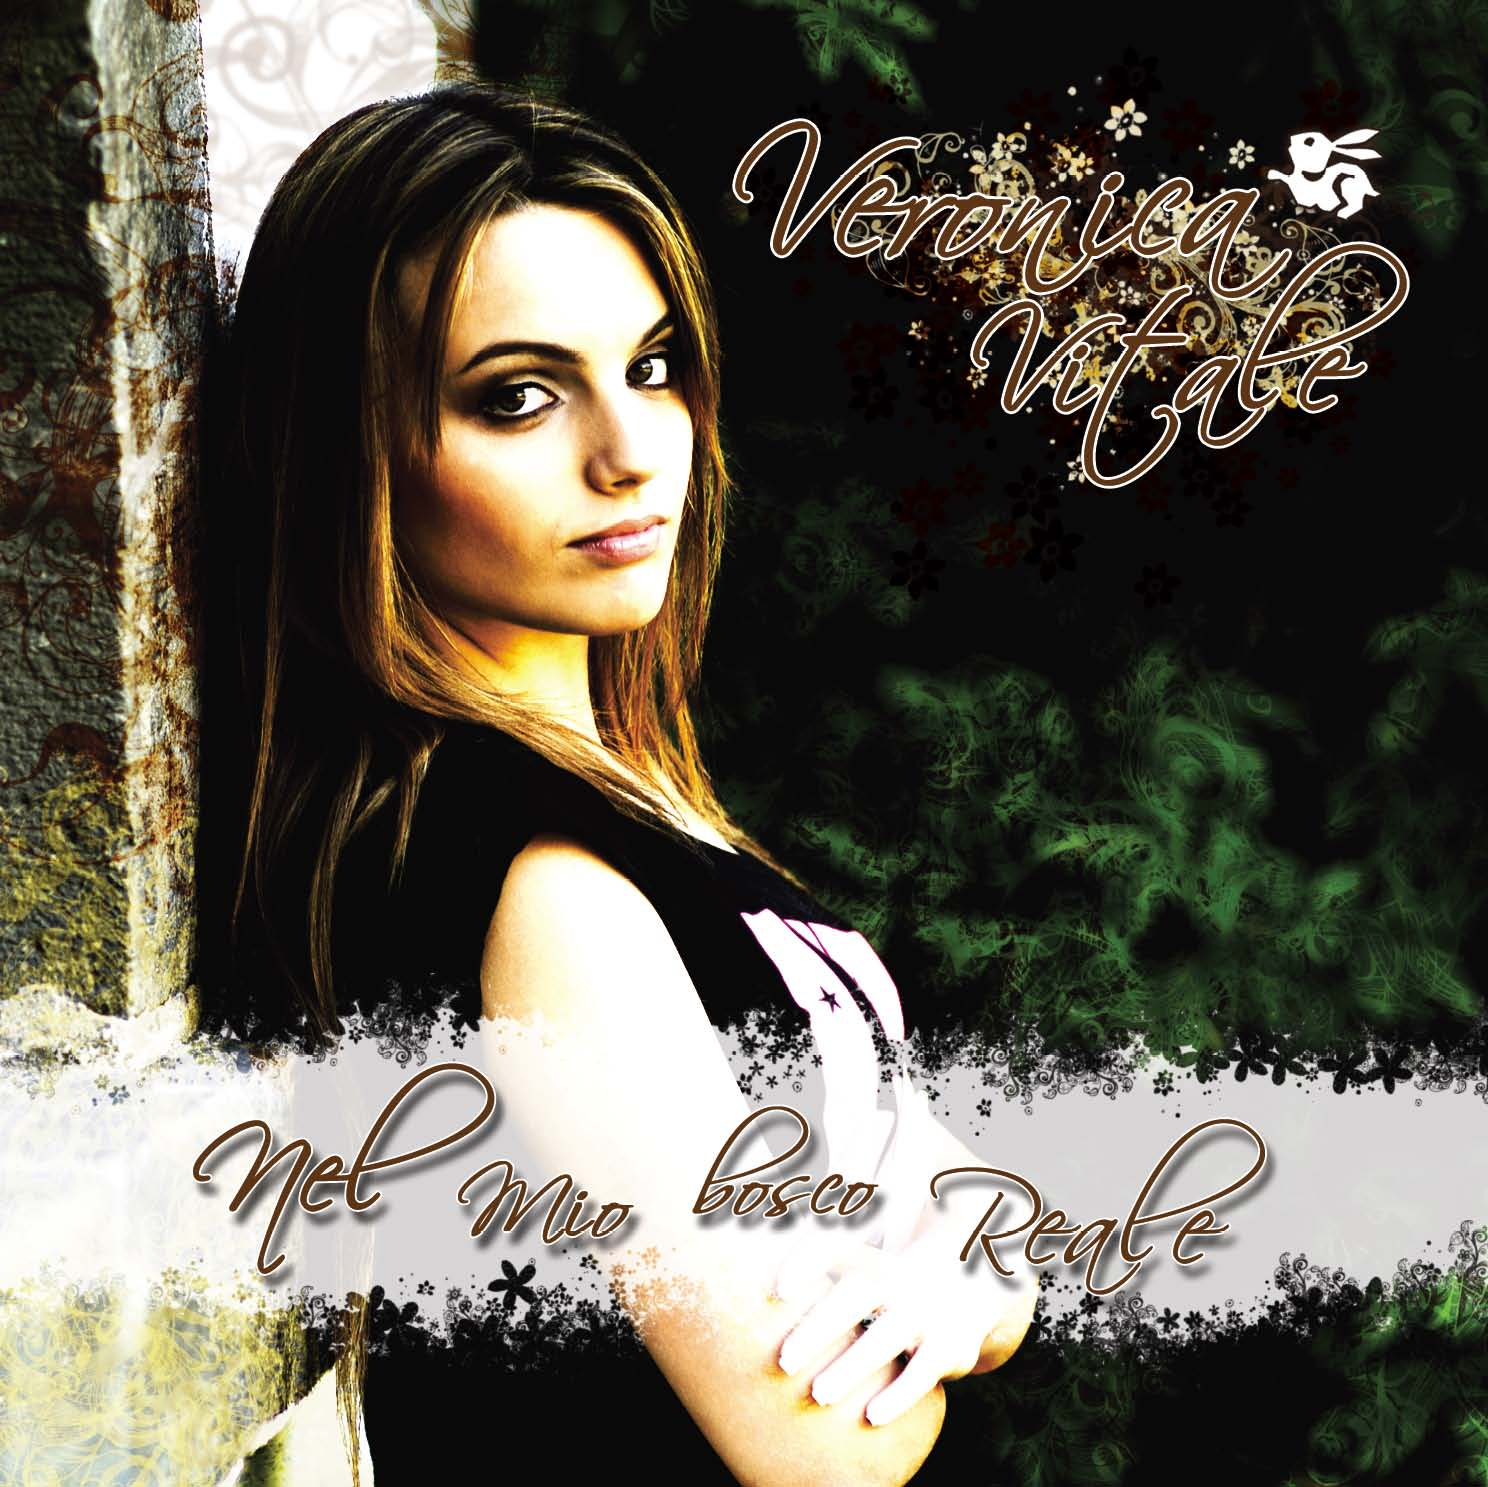 Veronica Vitale, Nel mio bosco Reale,Cover,Hangover, il Cielo, Debutalbum, Ryan D. Williams